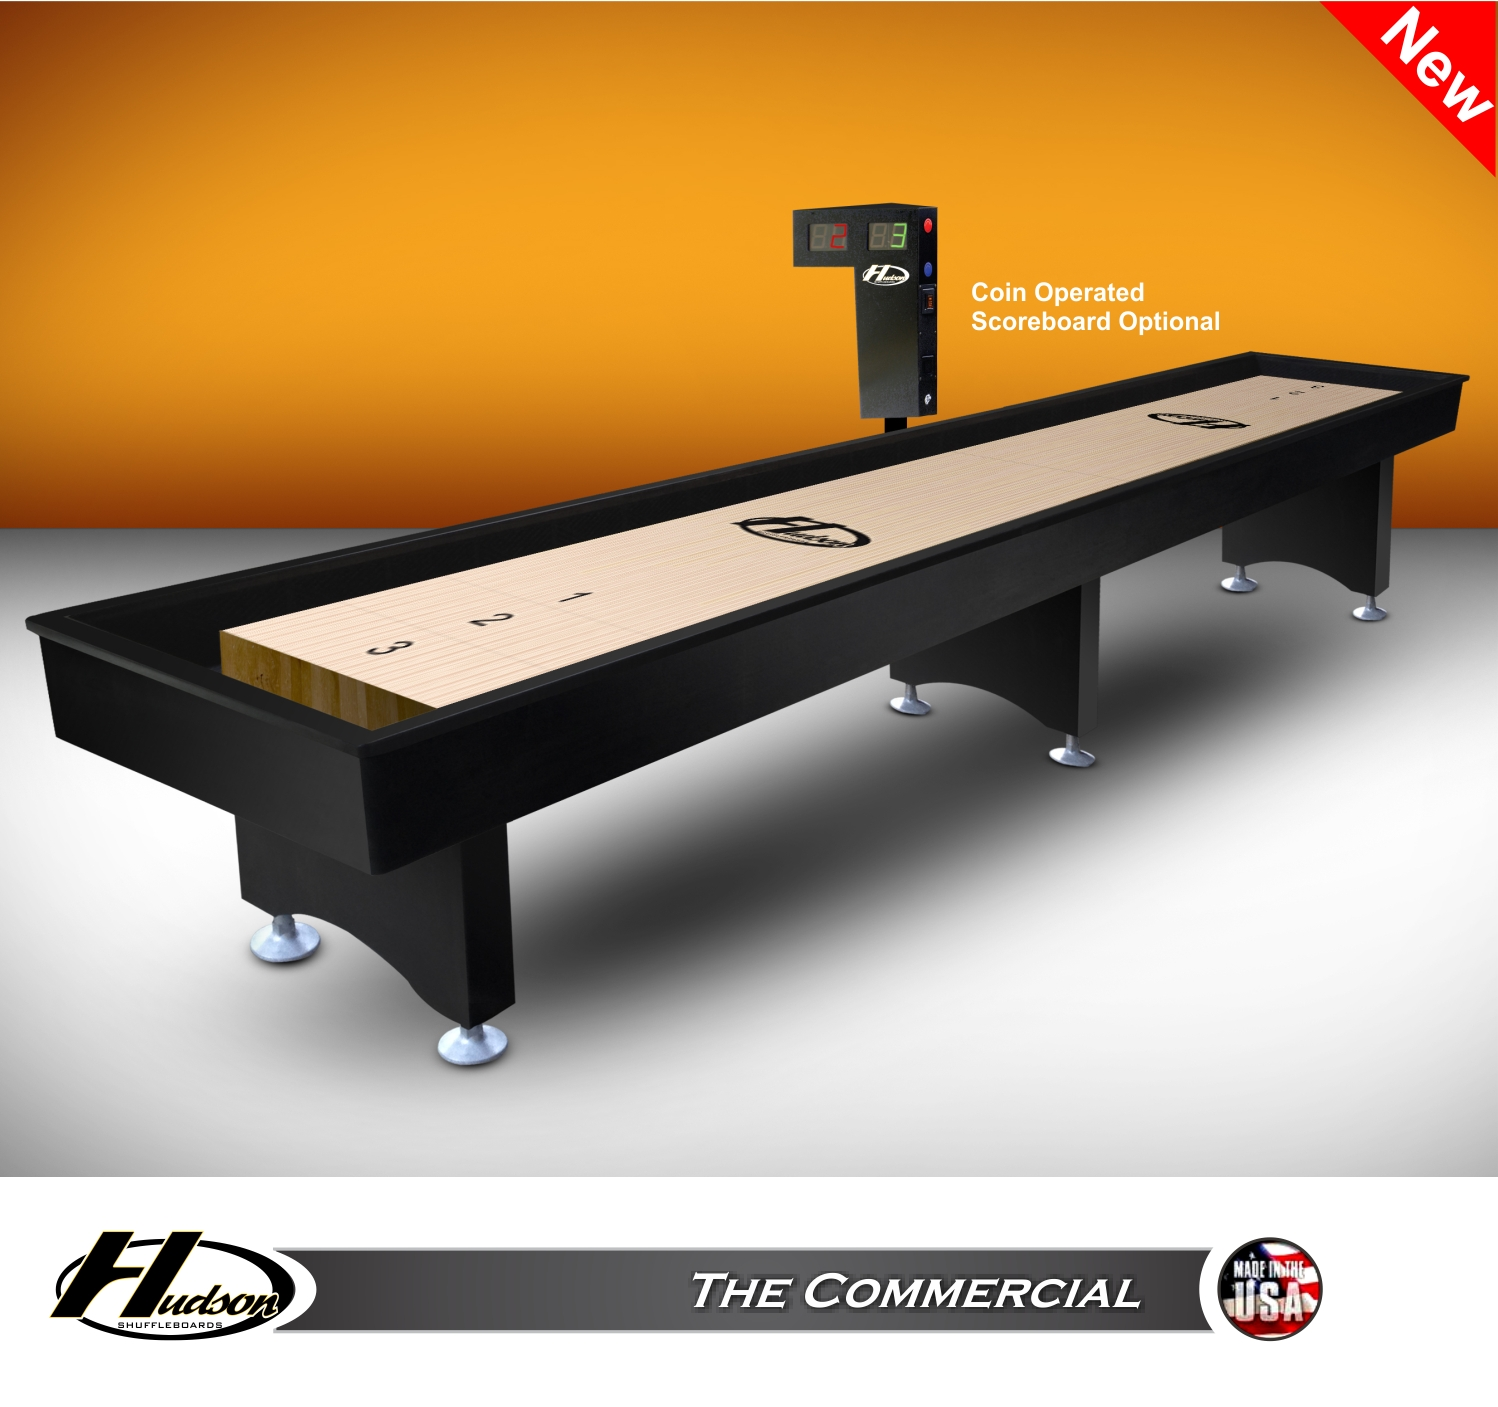 18' The Commercial Shuffleboard Table